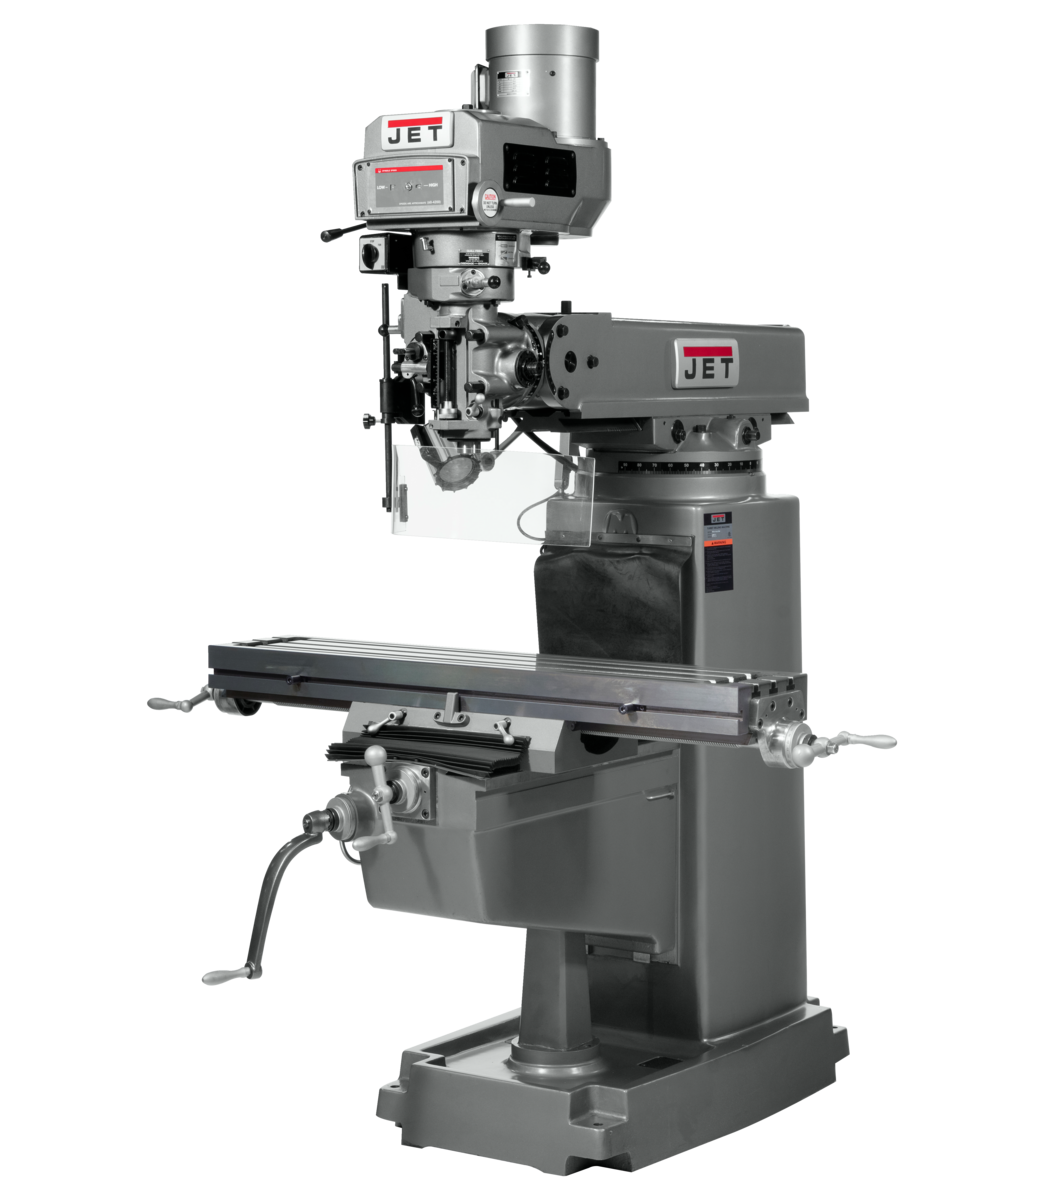 JTM-1050VS2 Mill With Newall DP700 DRO With X and Y-Axis Powerfeeds